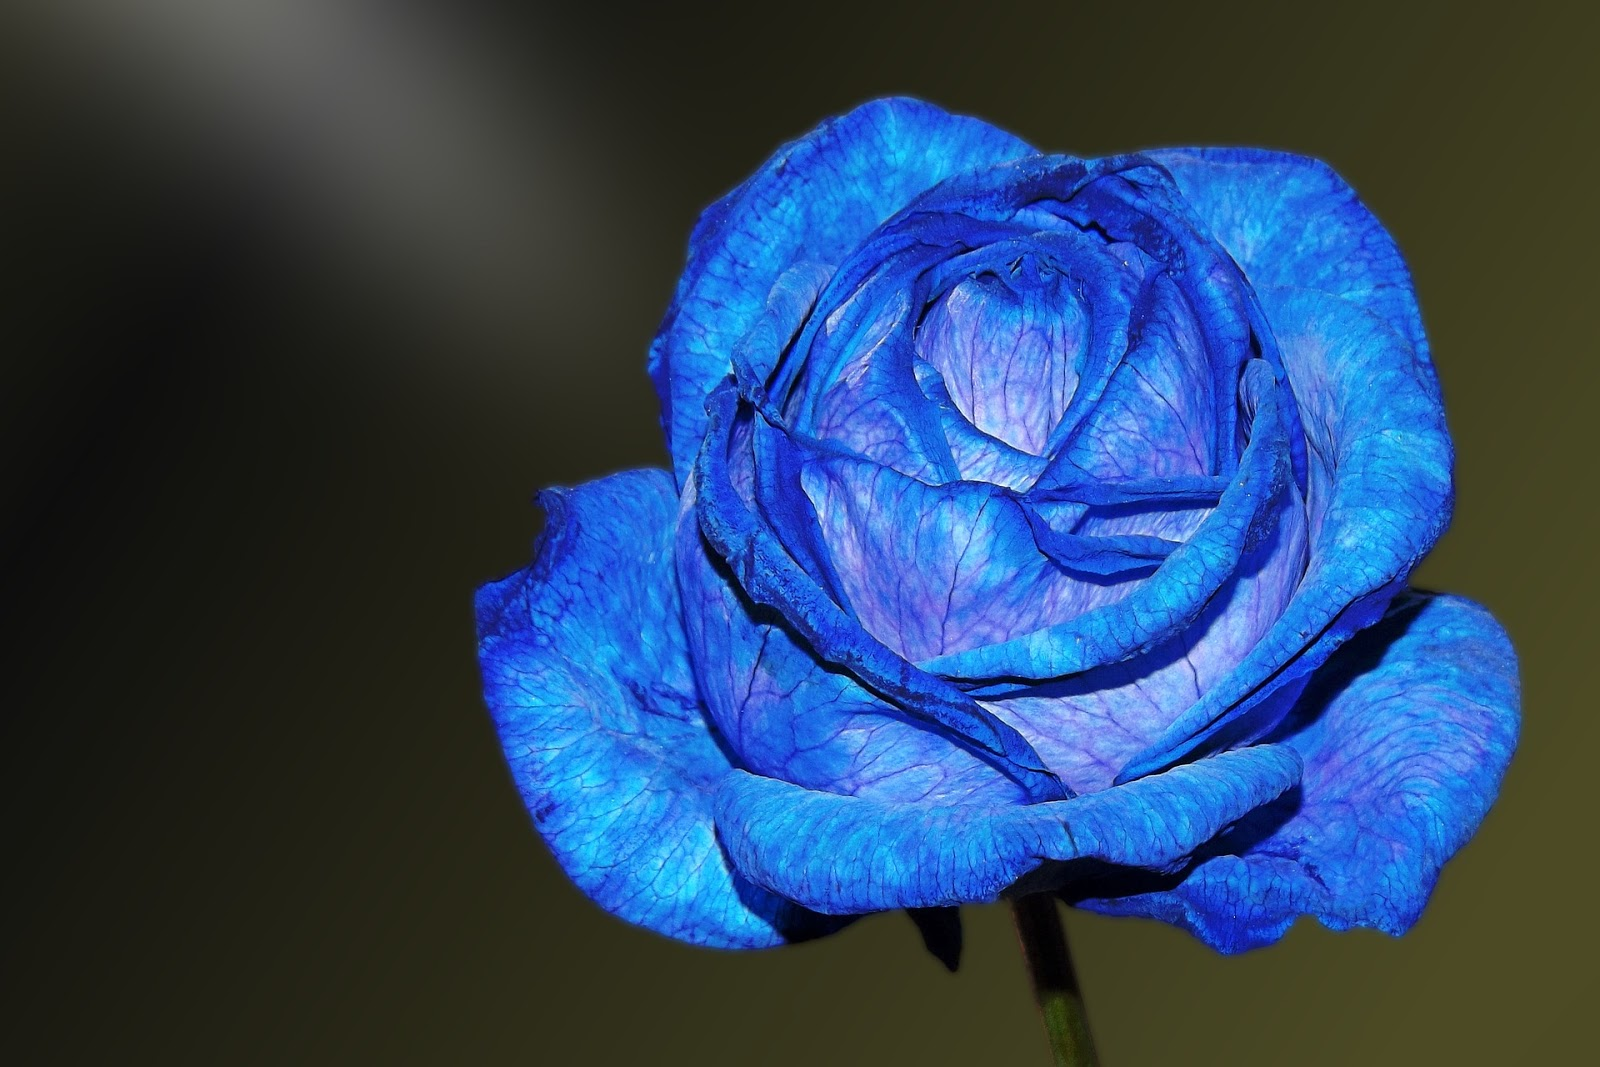 Life in landis valley the case for remaining unattainable the blue today though id like to focus on love unattainable as symbolized by the blue rose izmirmasajfo